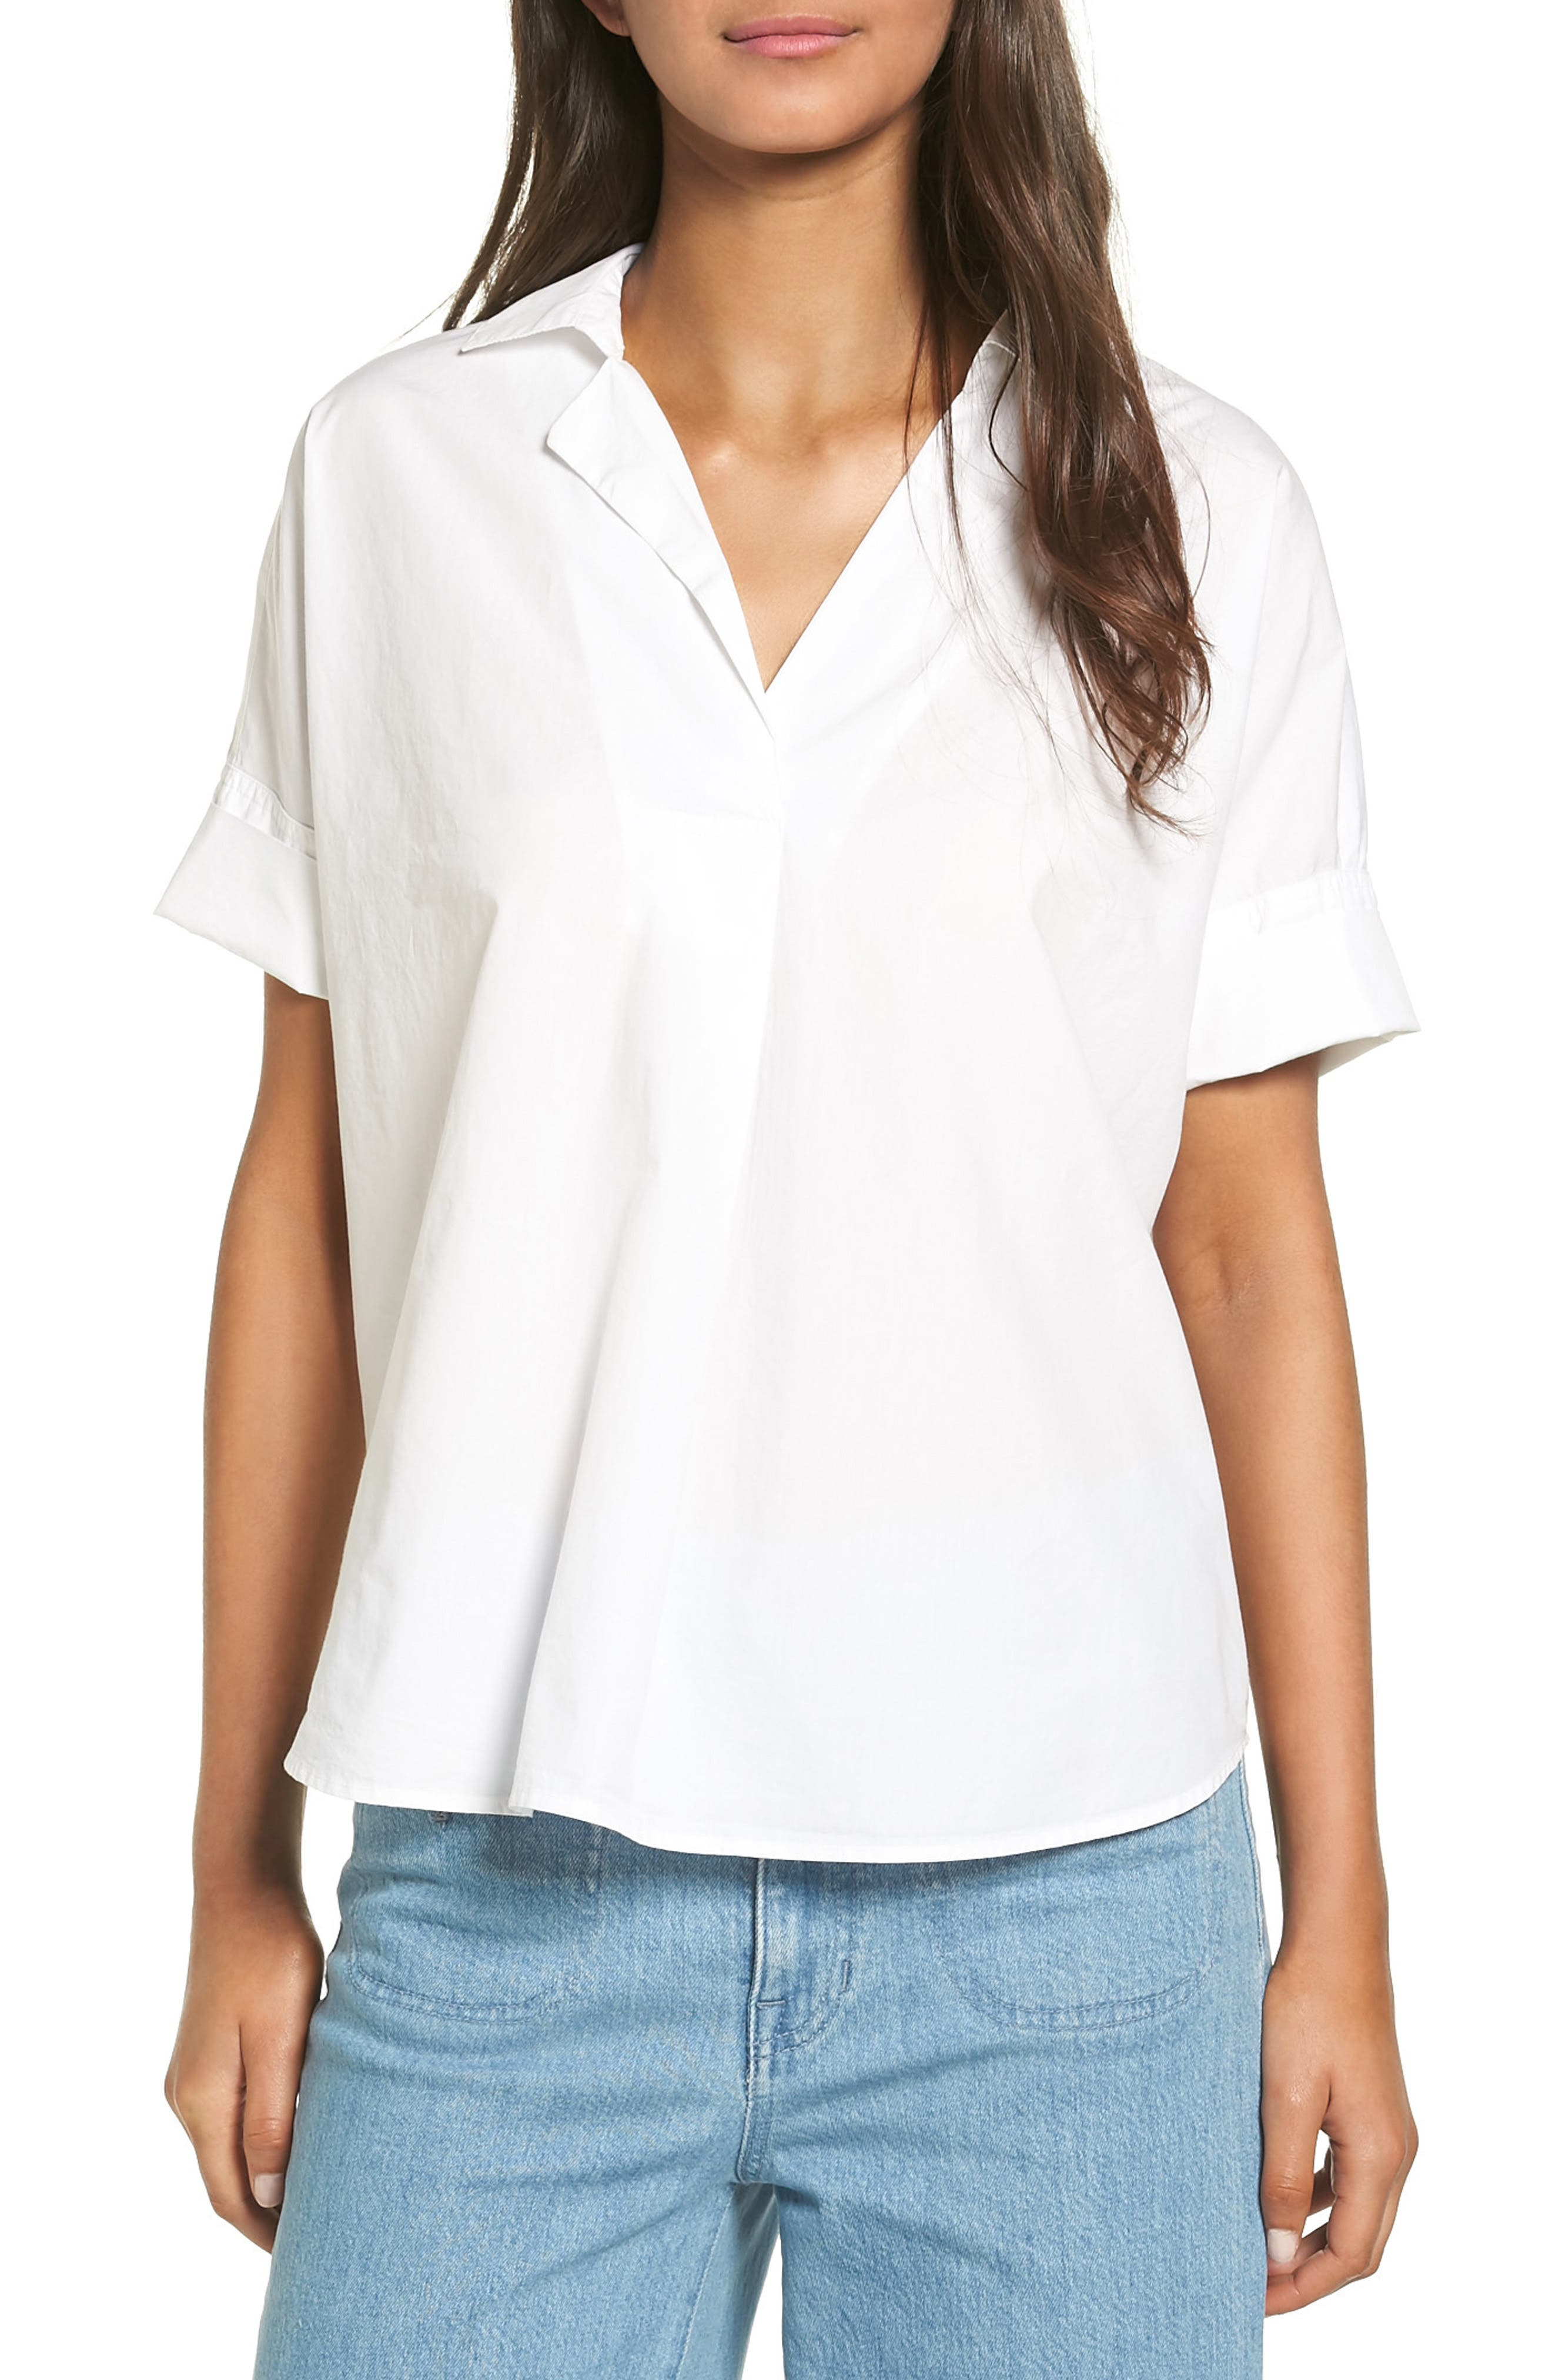 Madewell Courier Cotton Shirt